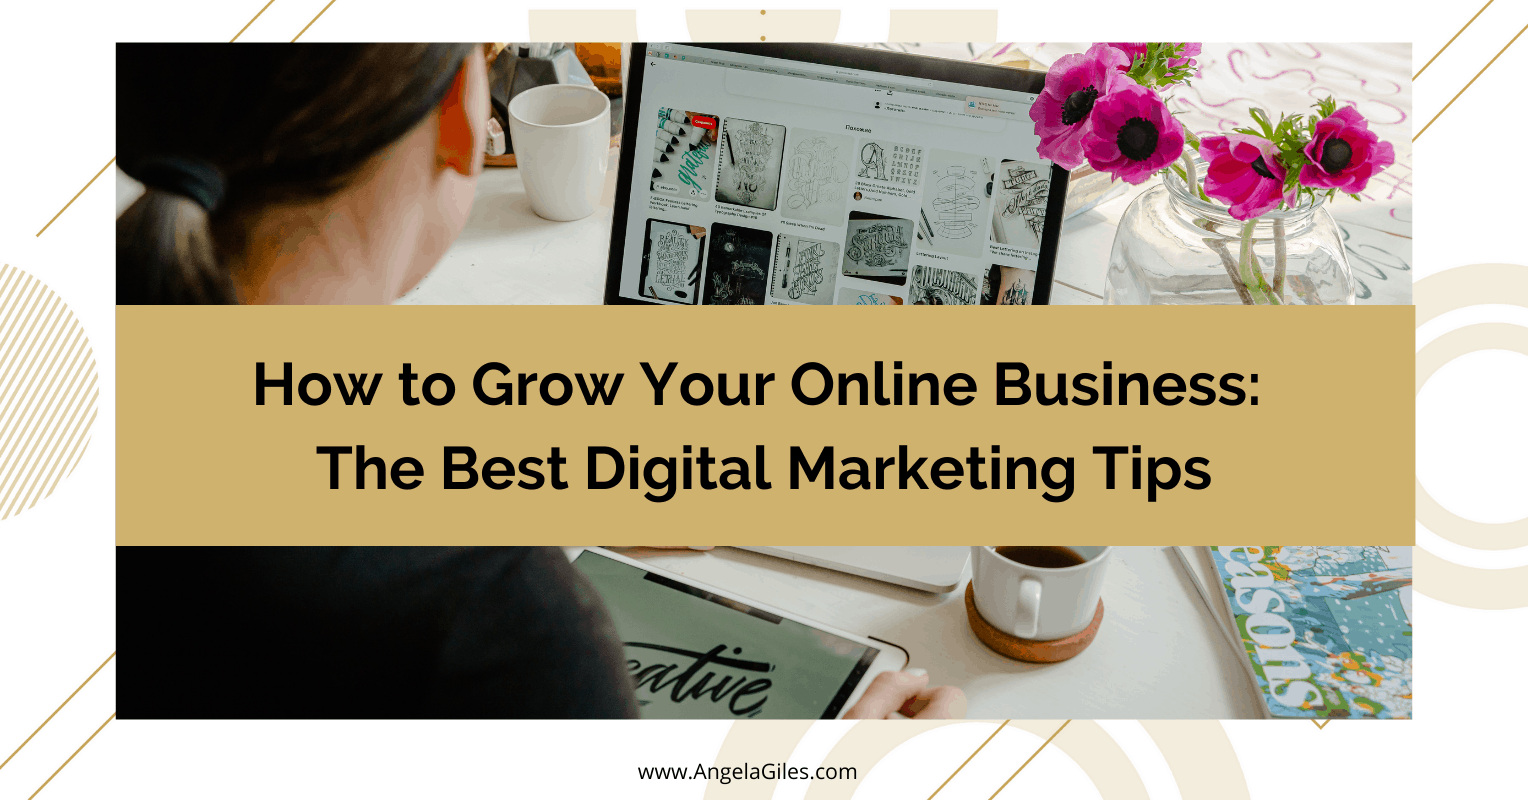 How to Grow Your Online Business: The Best Digital Marketing Tips